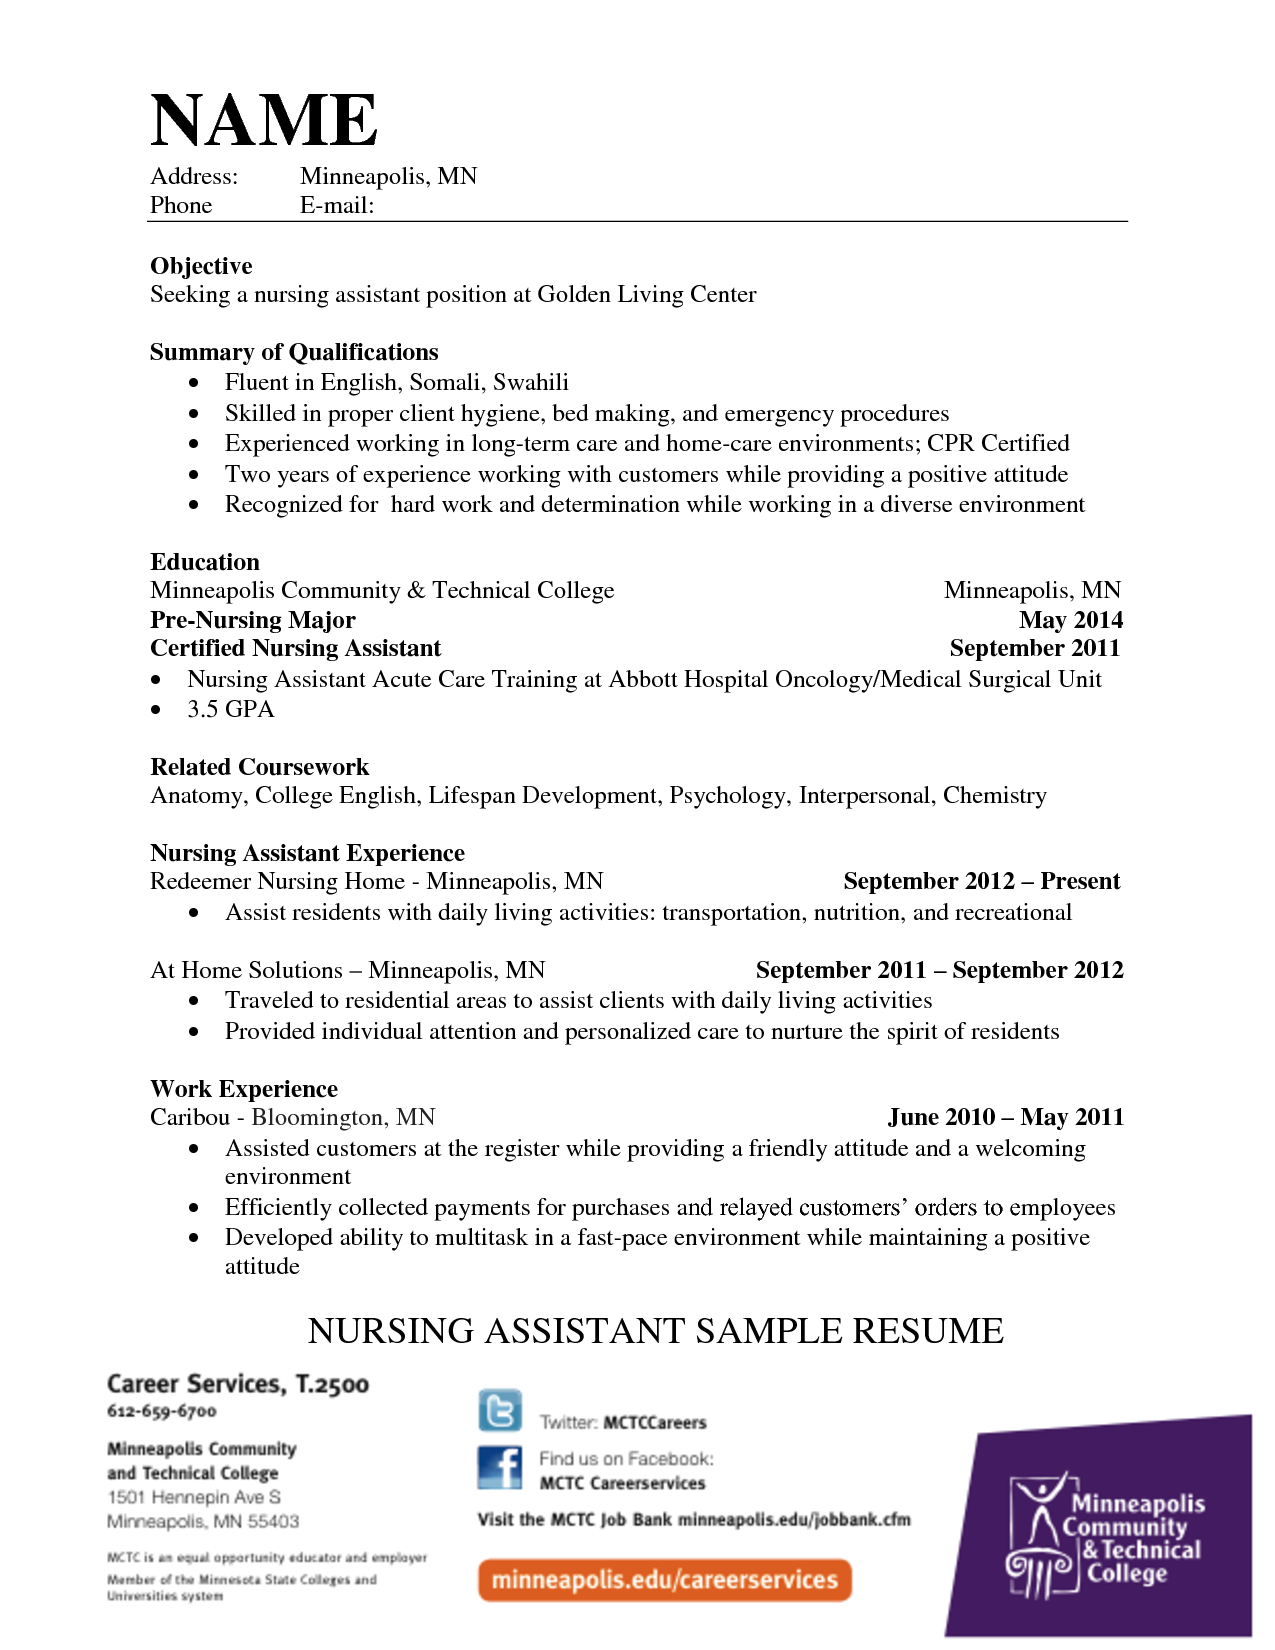 Nurse Manager Resume Stay At Home Returning To Work Cover Letterpupil